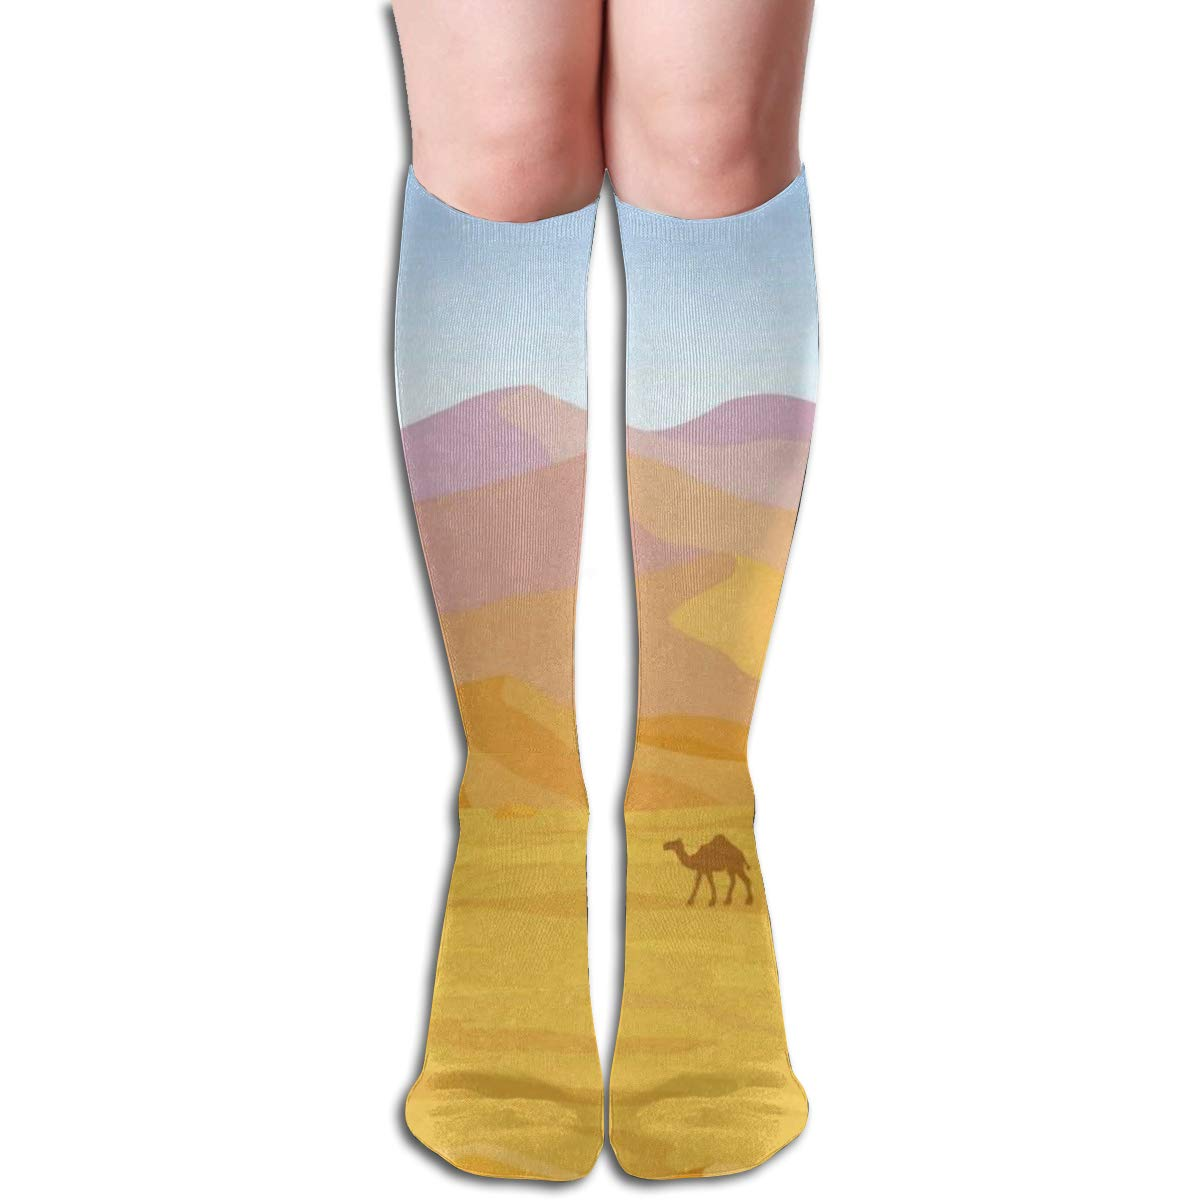 Stretch Stocking Dunes Of Desert Soccer Socks Over The Calf For Running,Athletic,Travel